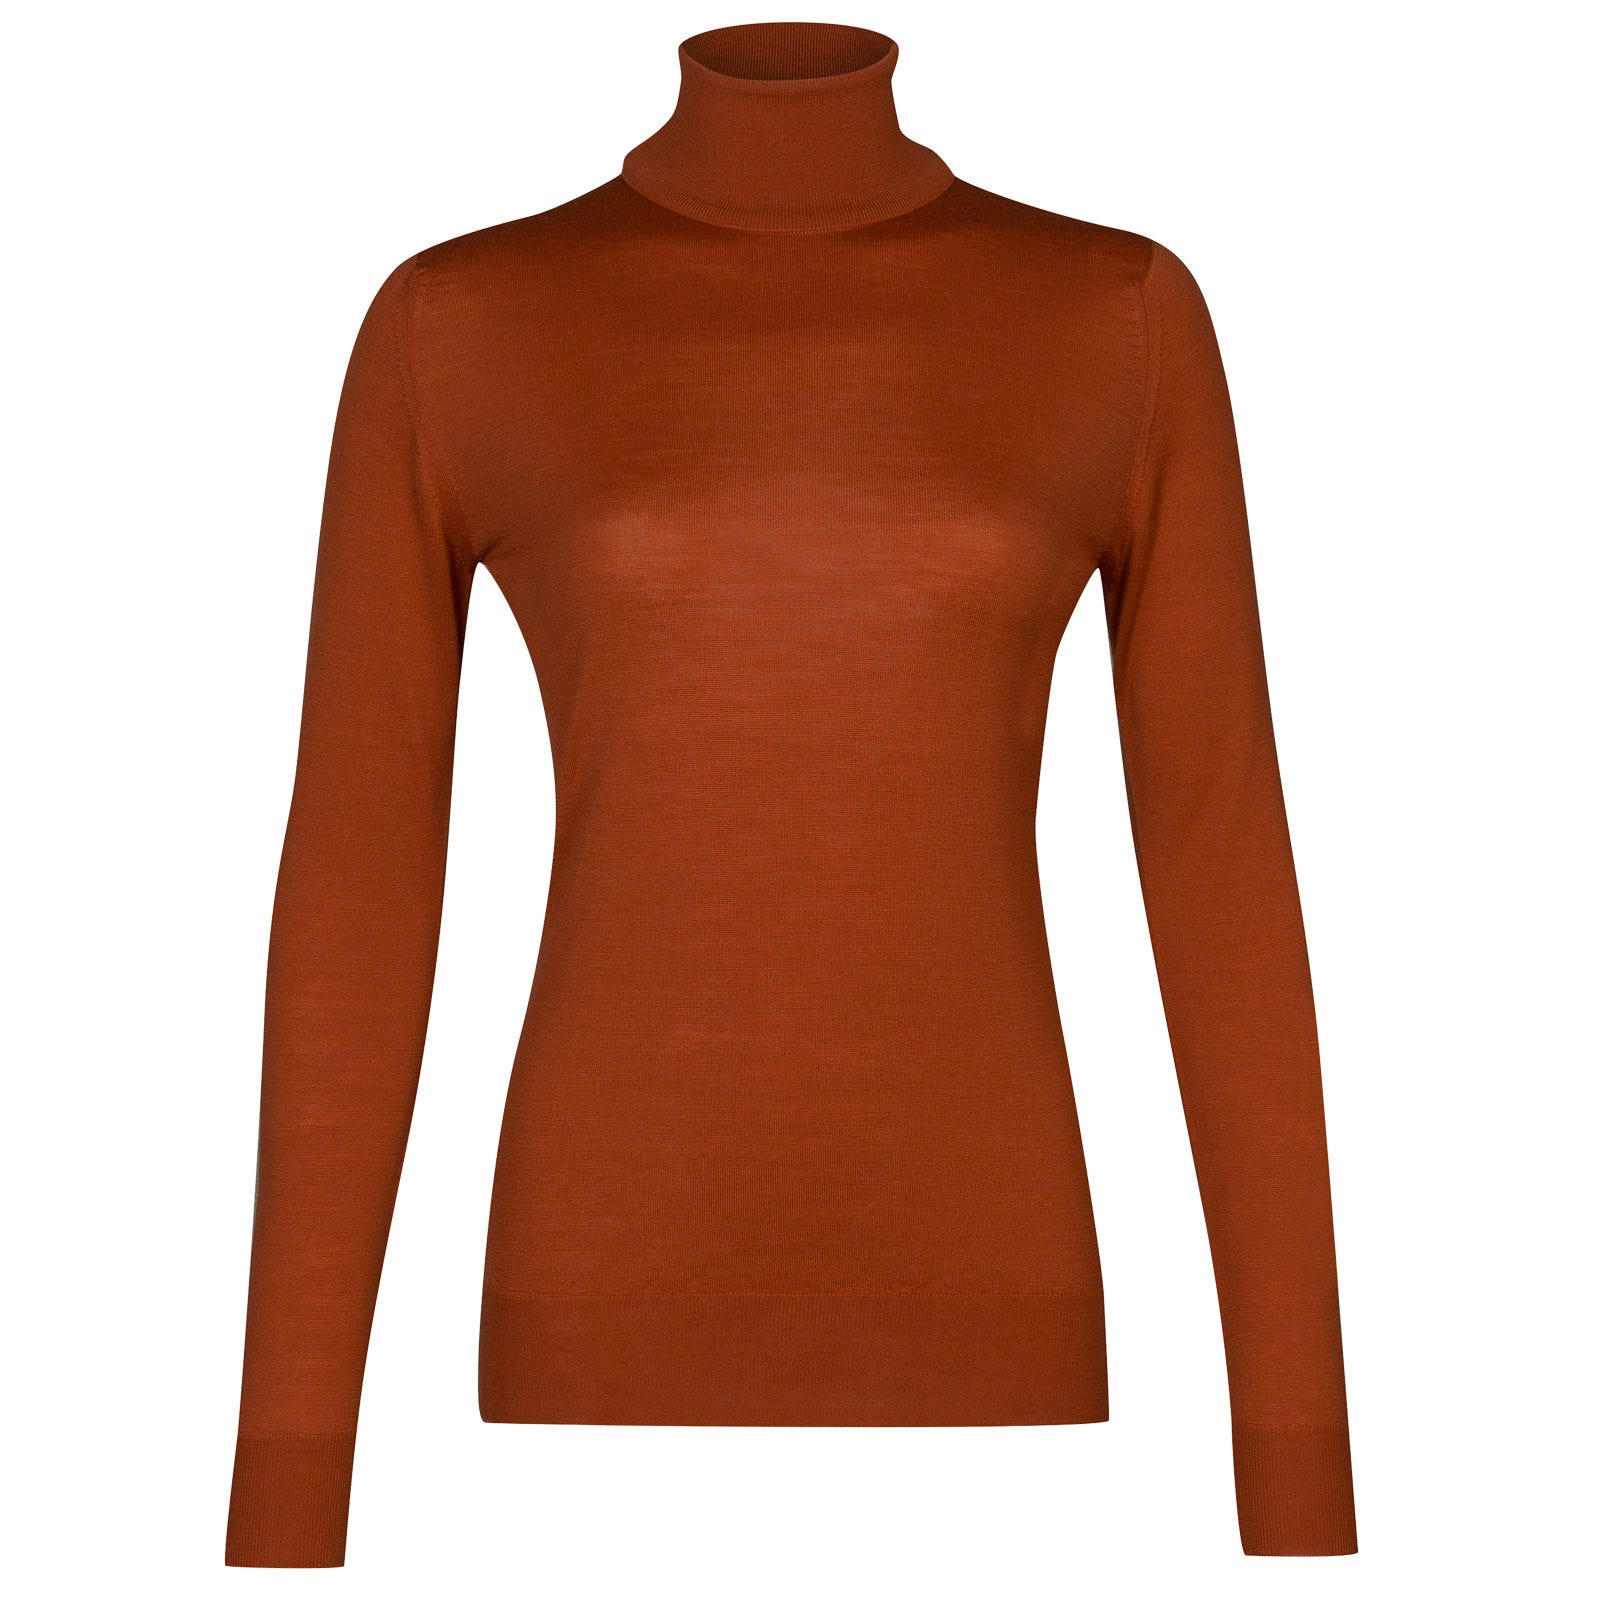 John Smedley Catkin Merino Wool Sweater in Flare Orange-S